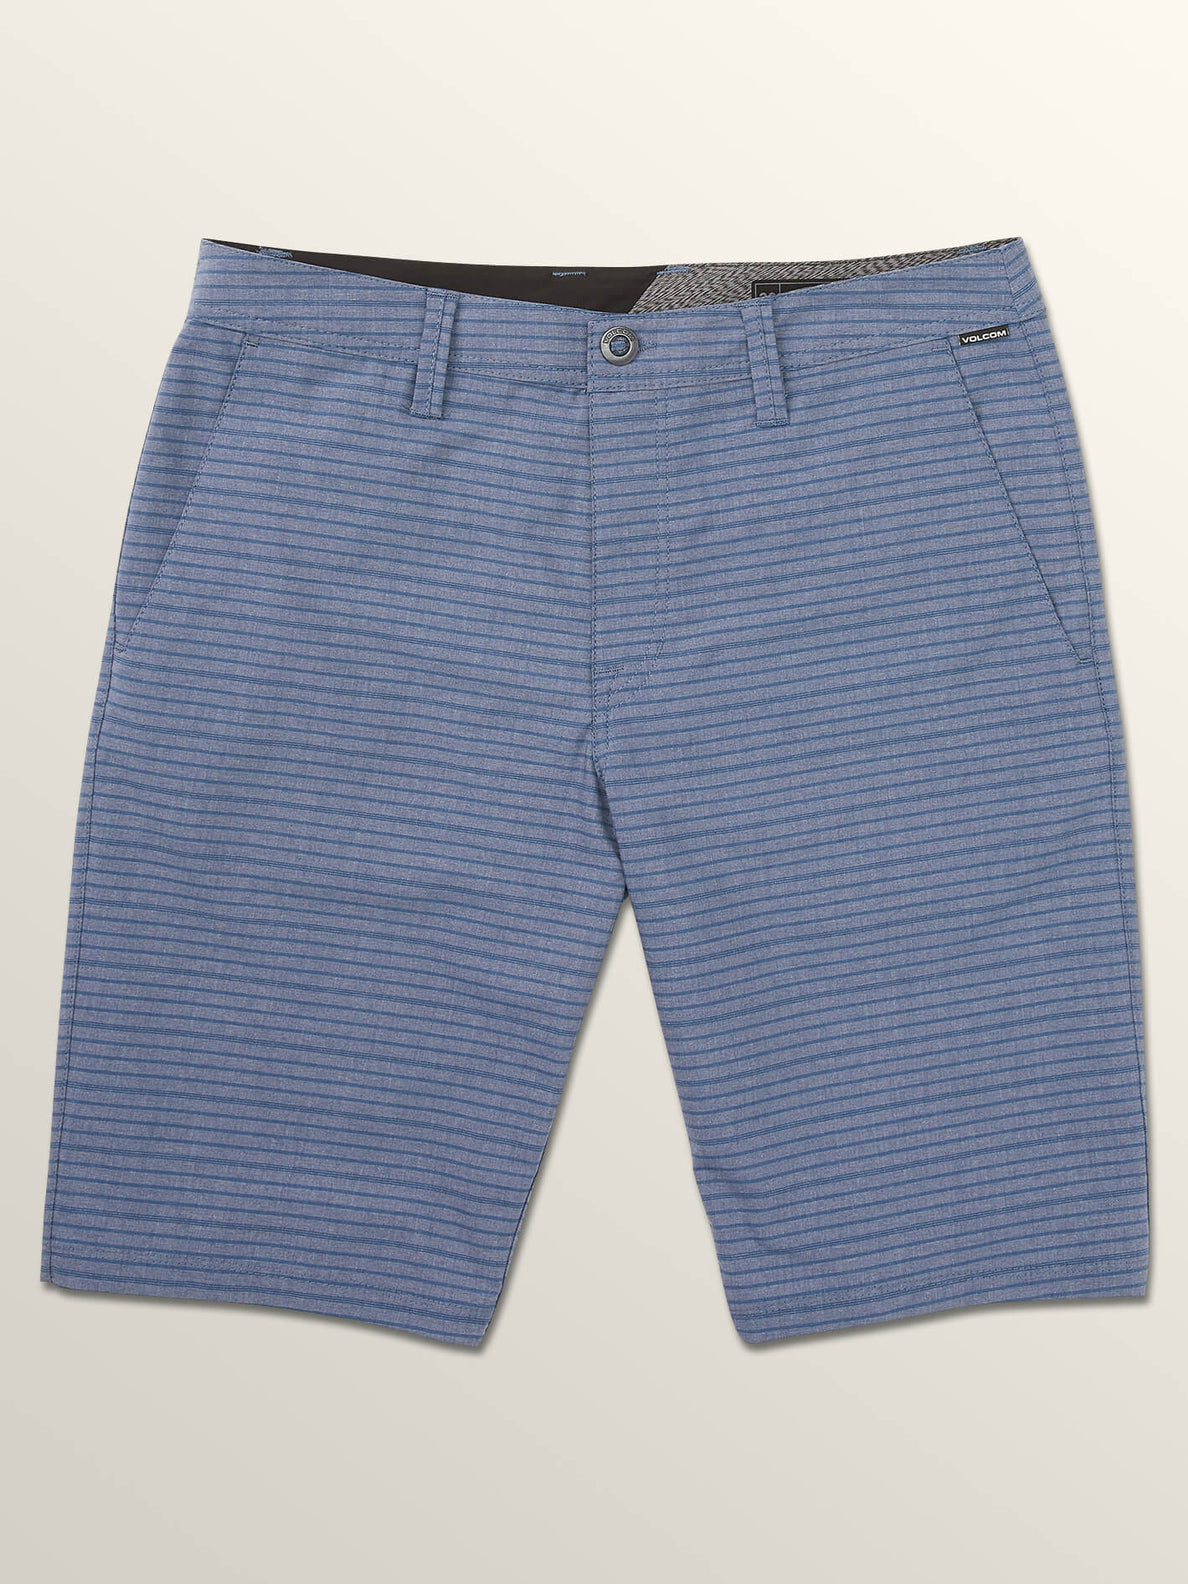 Frickin Surf N' Turf Mix Hybrid Shorts In Snow Vintage Navy, Third Alternate View